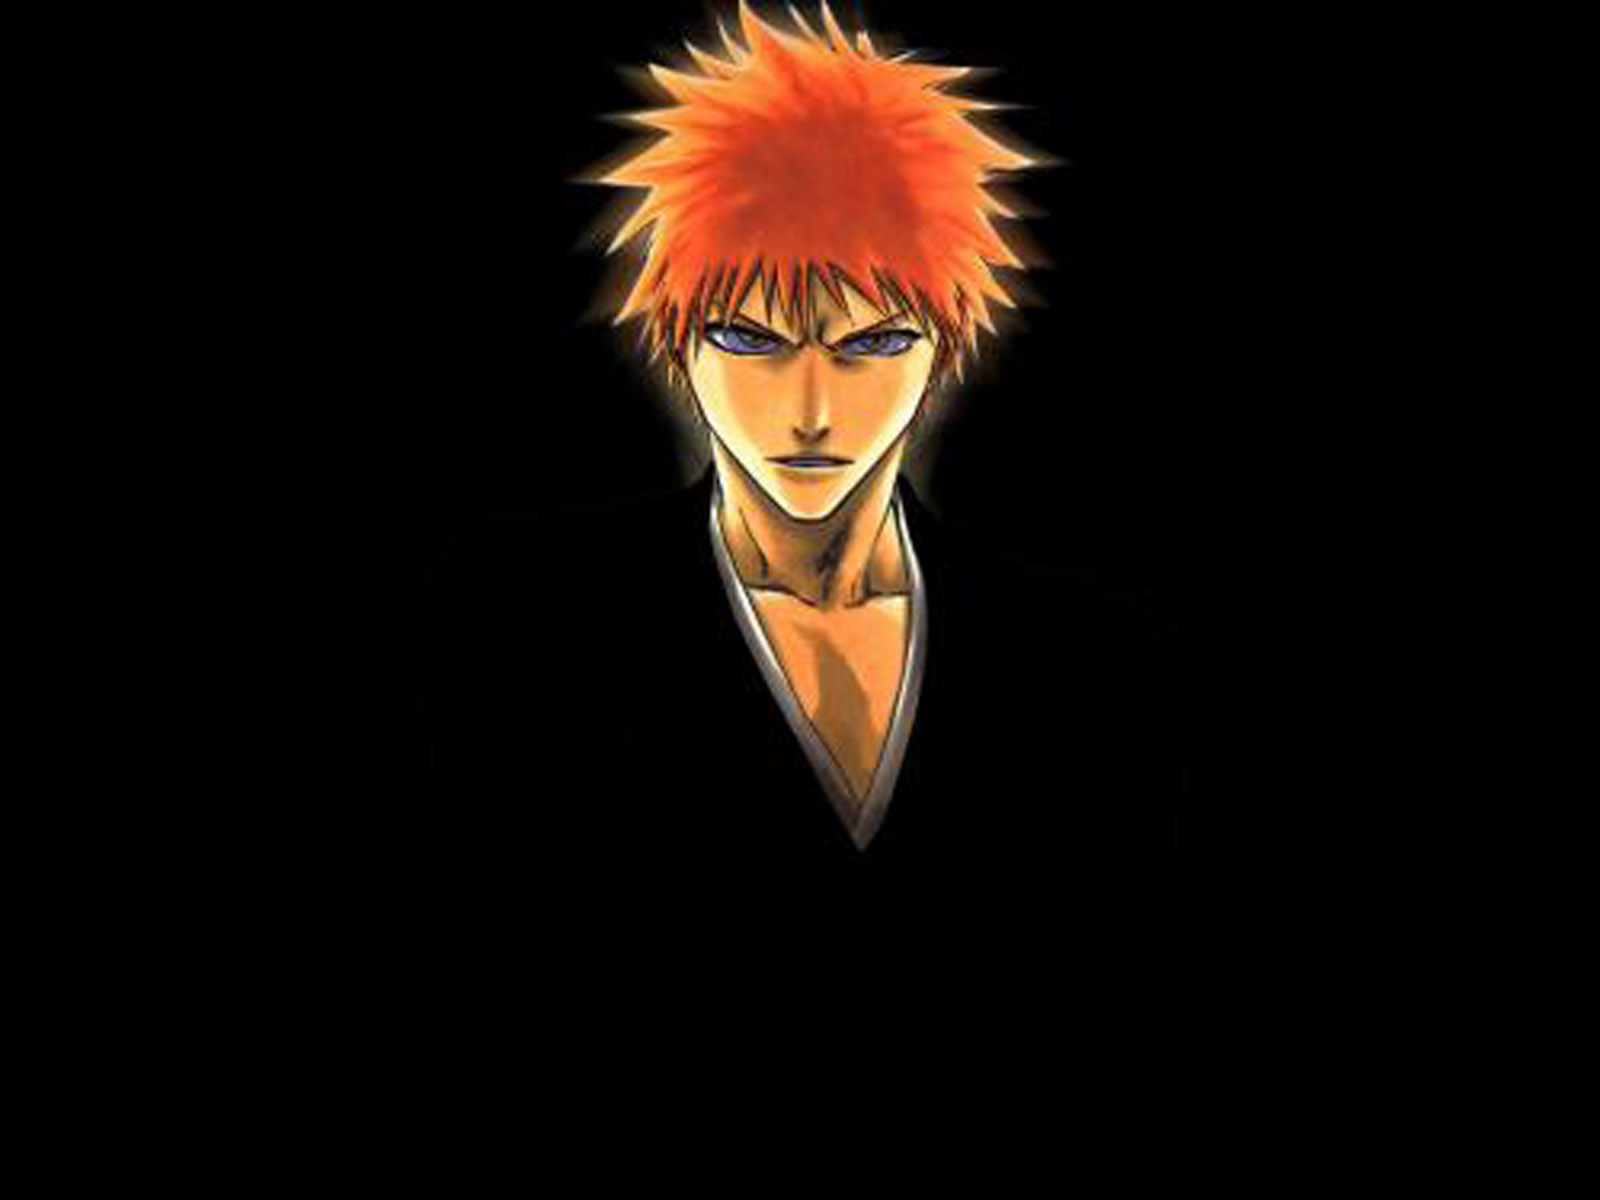 Hd wallpapers anime guy cool wallpapers - Cool boy wallpaper hd download ...